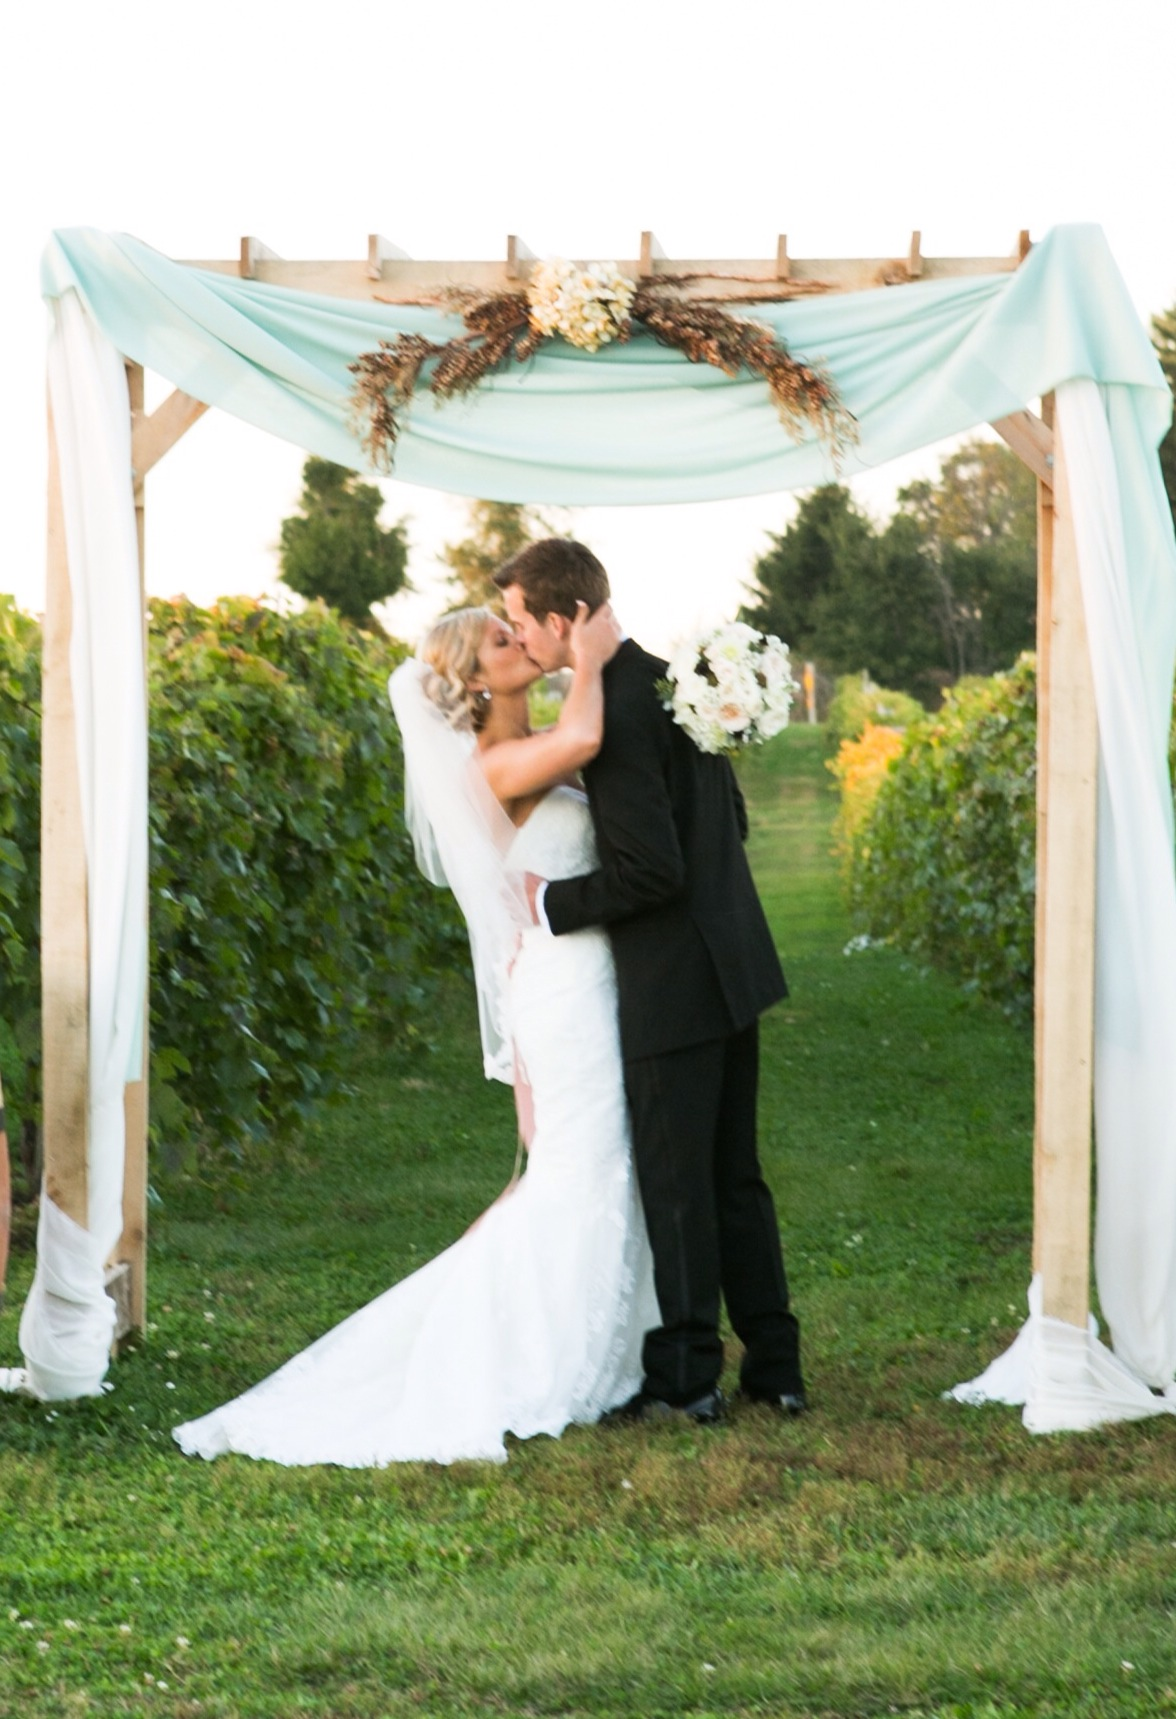 Acquaviva Winery Maple Park will be CLOSED for a Wedding